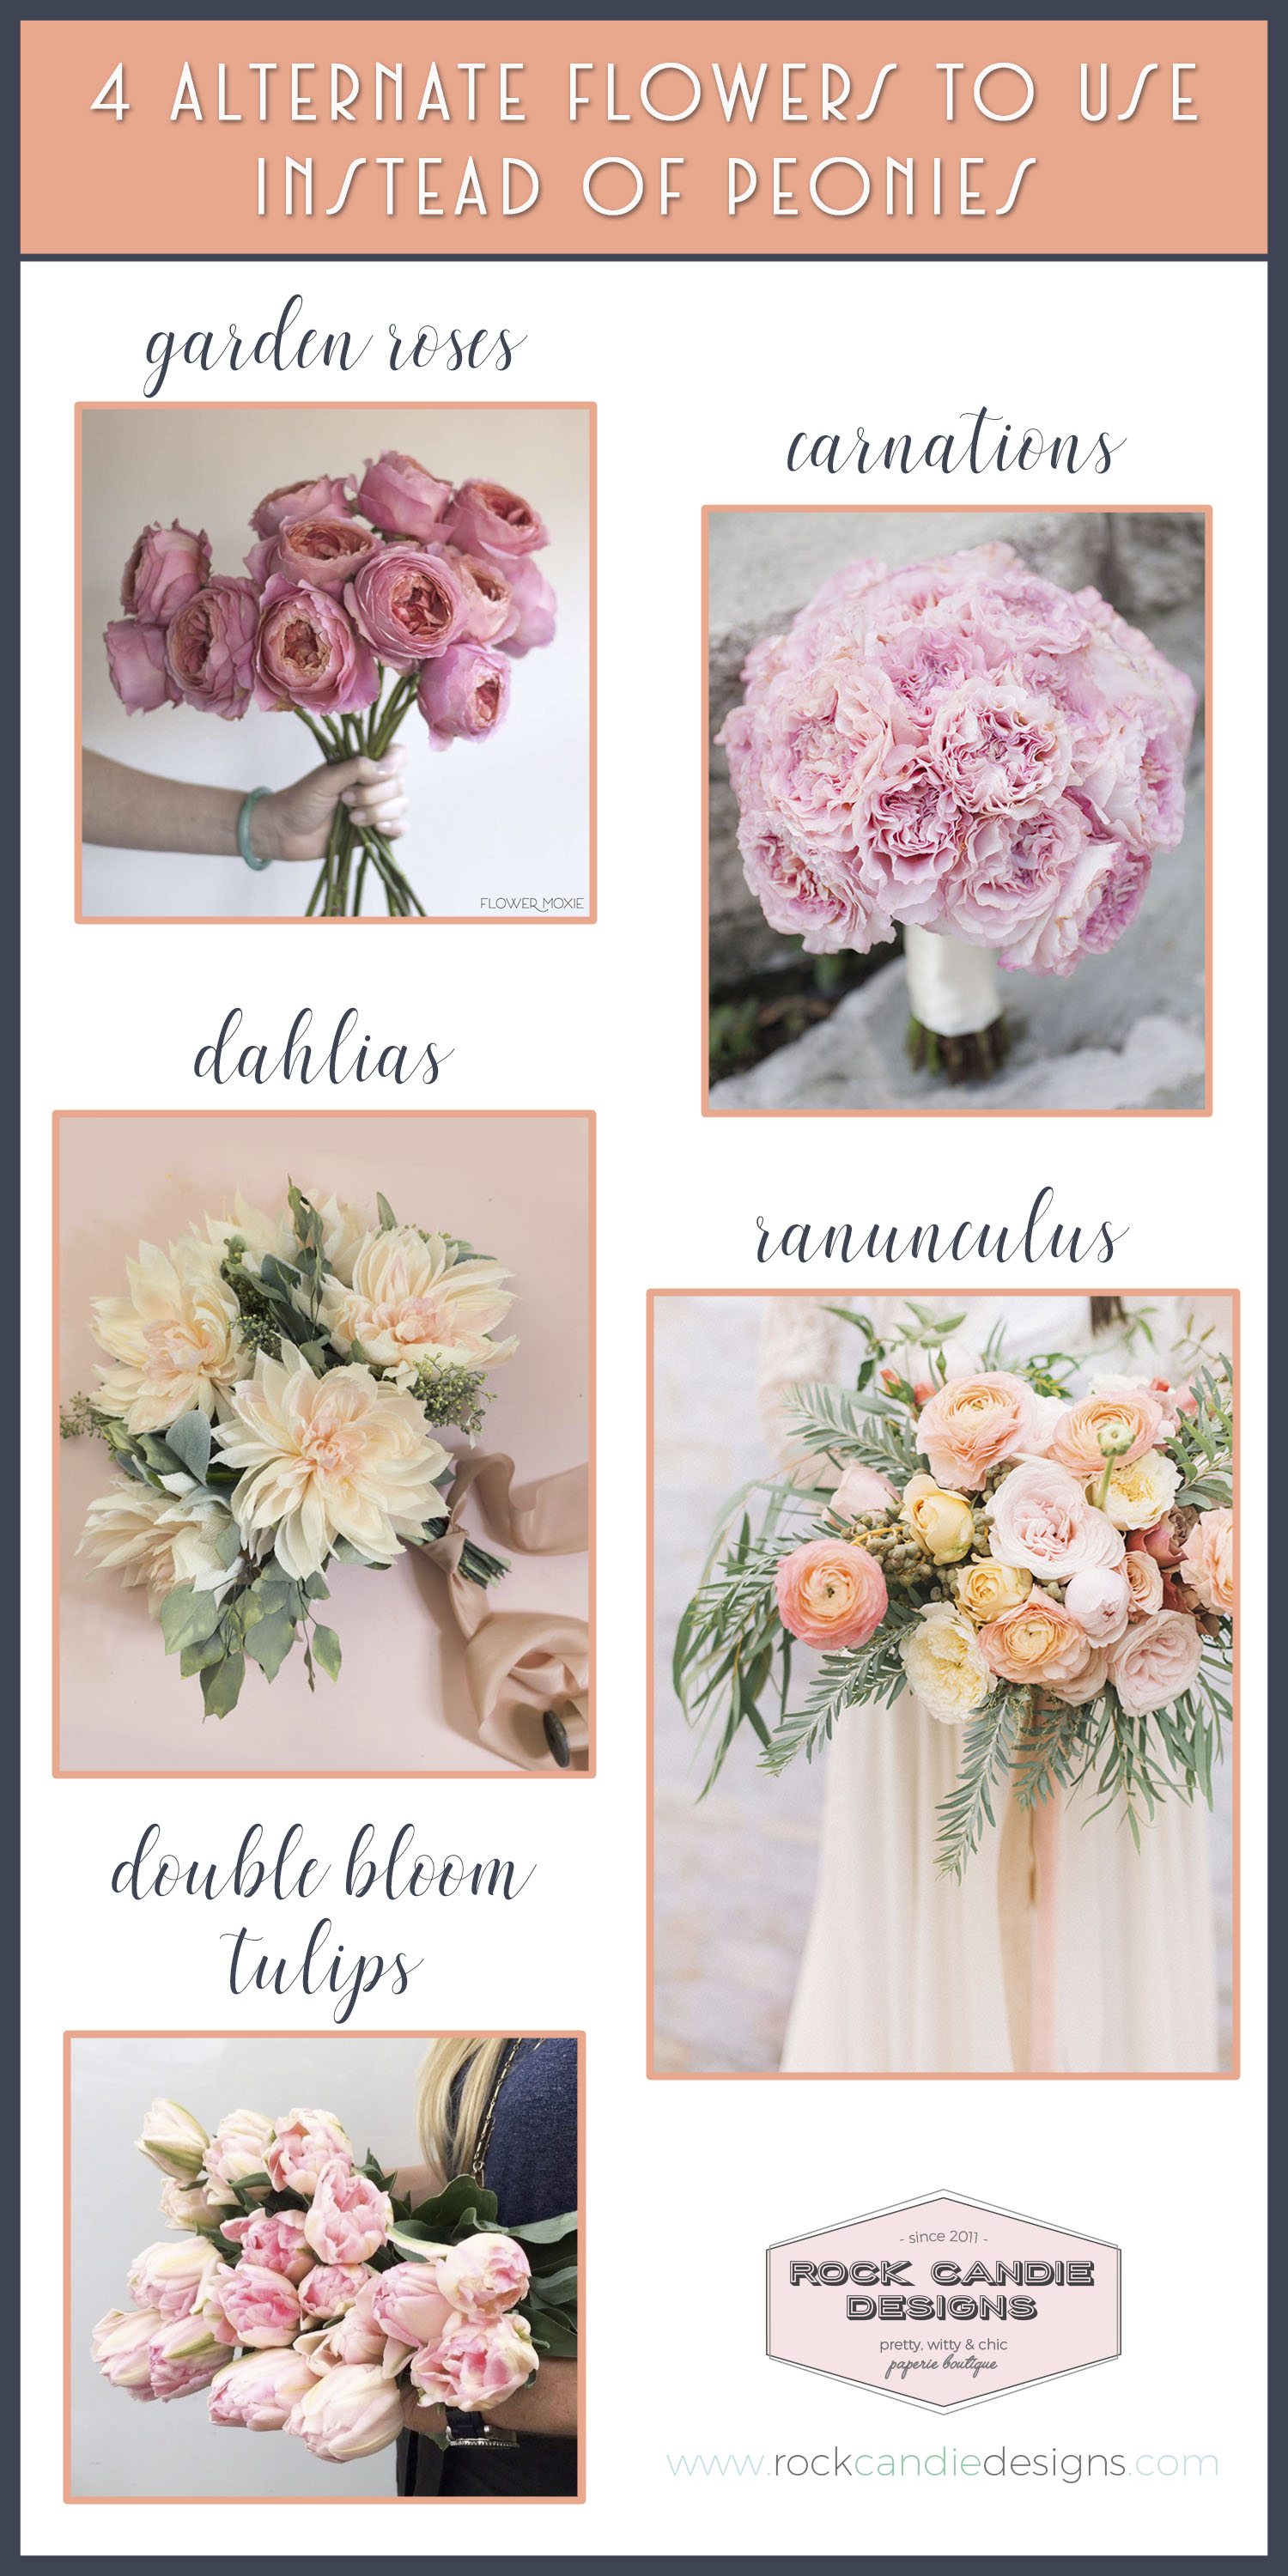 4 Different Types of Flowers to Use Instead of Peonies.jpg